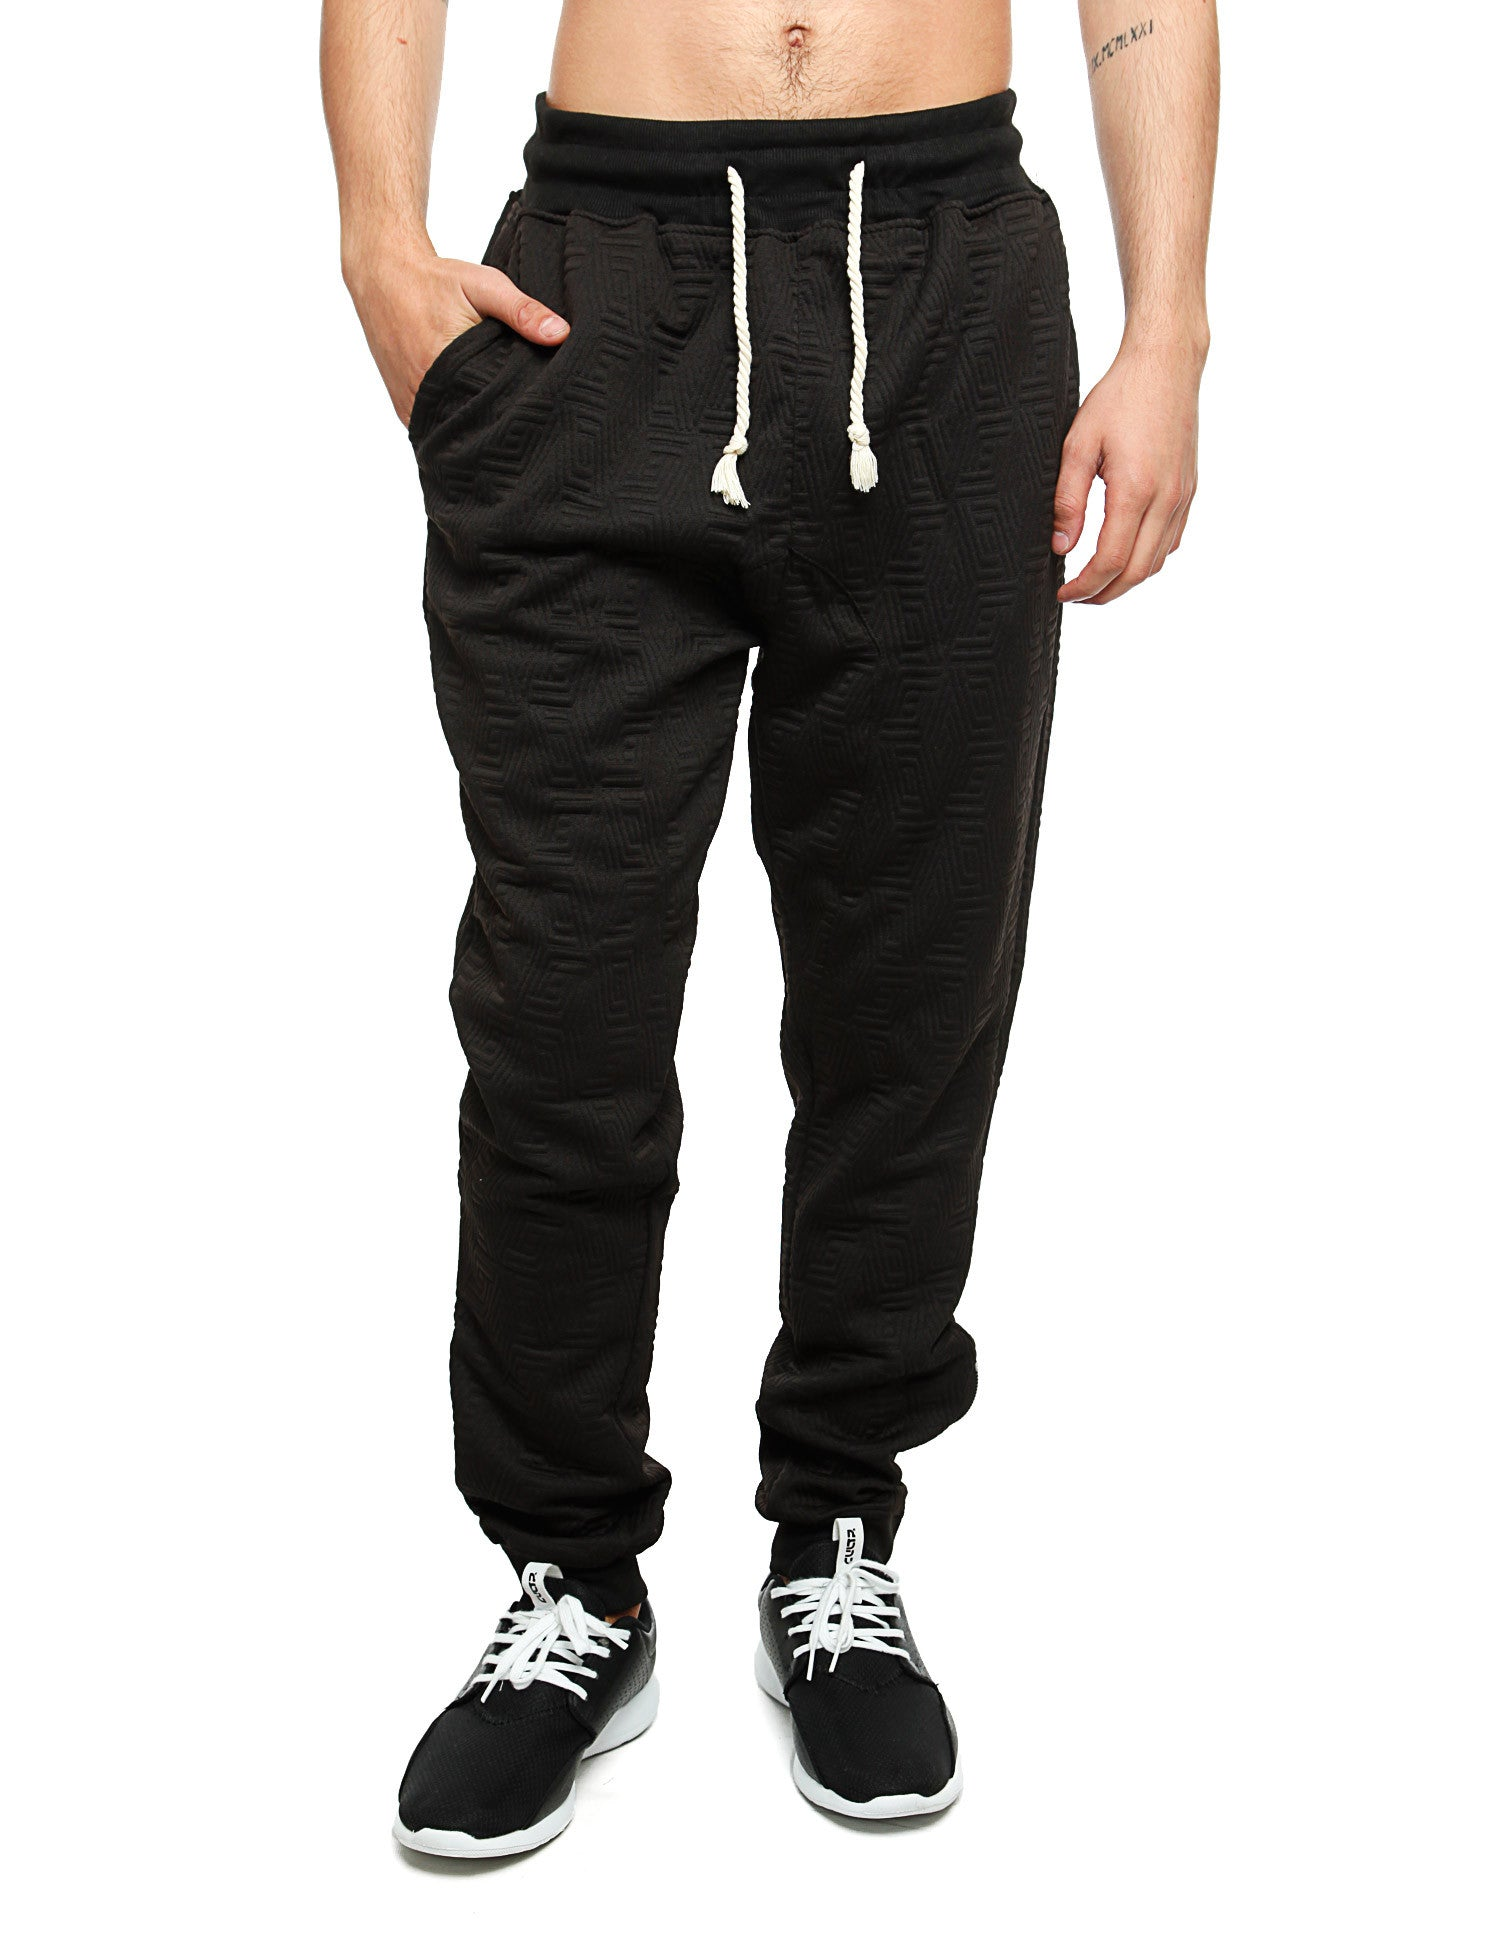 Imperious ?Quilted? Sweatpant FP542 Black